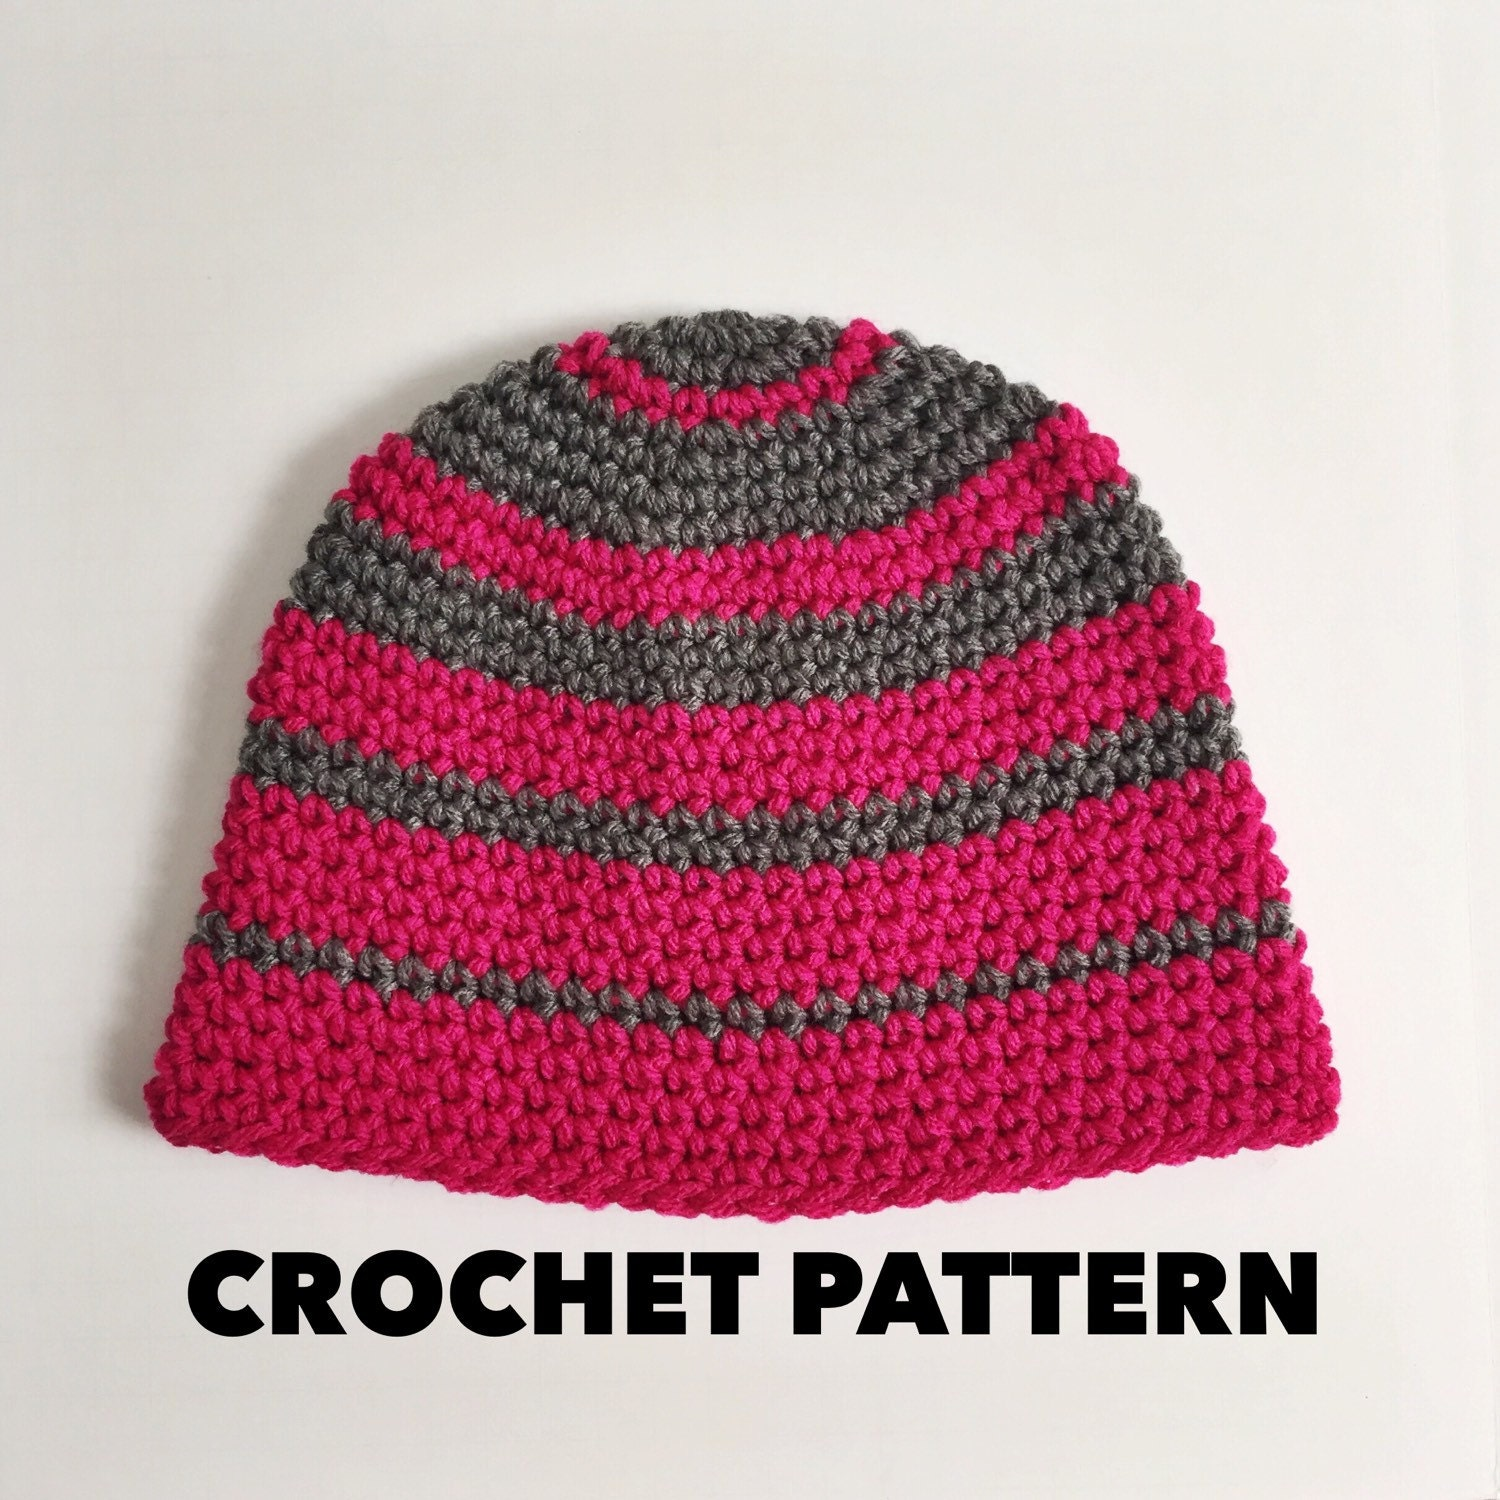 Crochet Beanie Pattern Striped : Crochet Striped Beanie Pattern Thick n Thin Beanie Hat